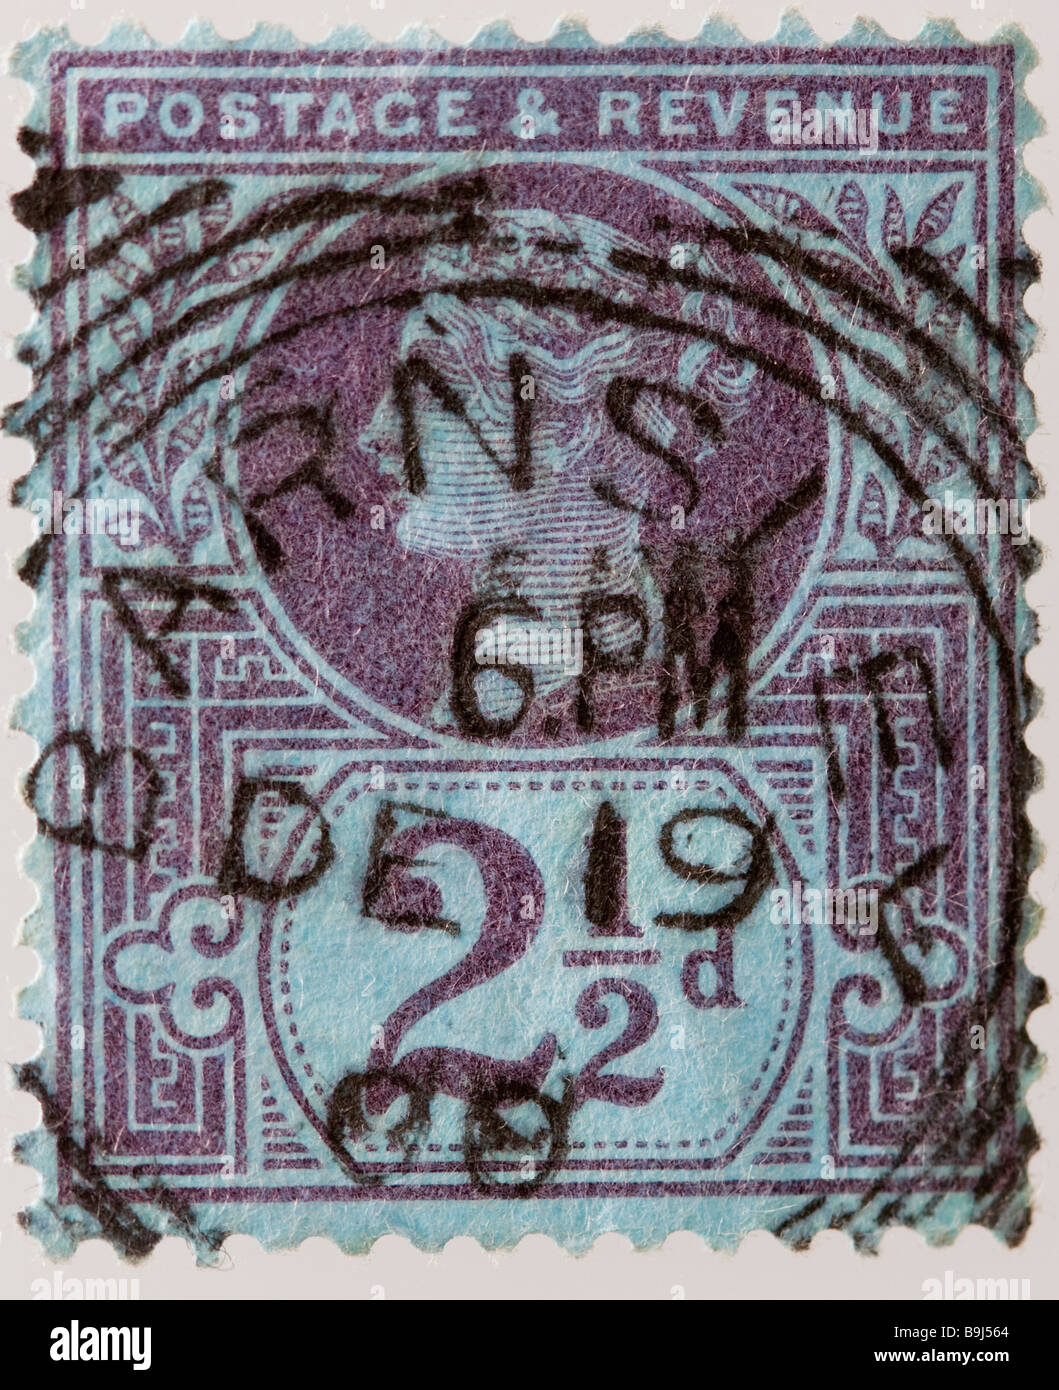 English Victorian two and half pence Jubilee postage stamp 1887-1900 SG 201, mauve, used - Stock Image